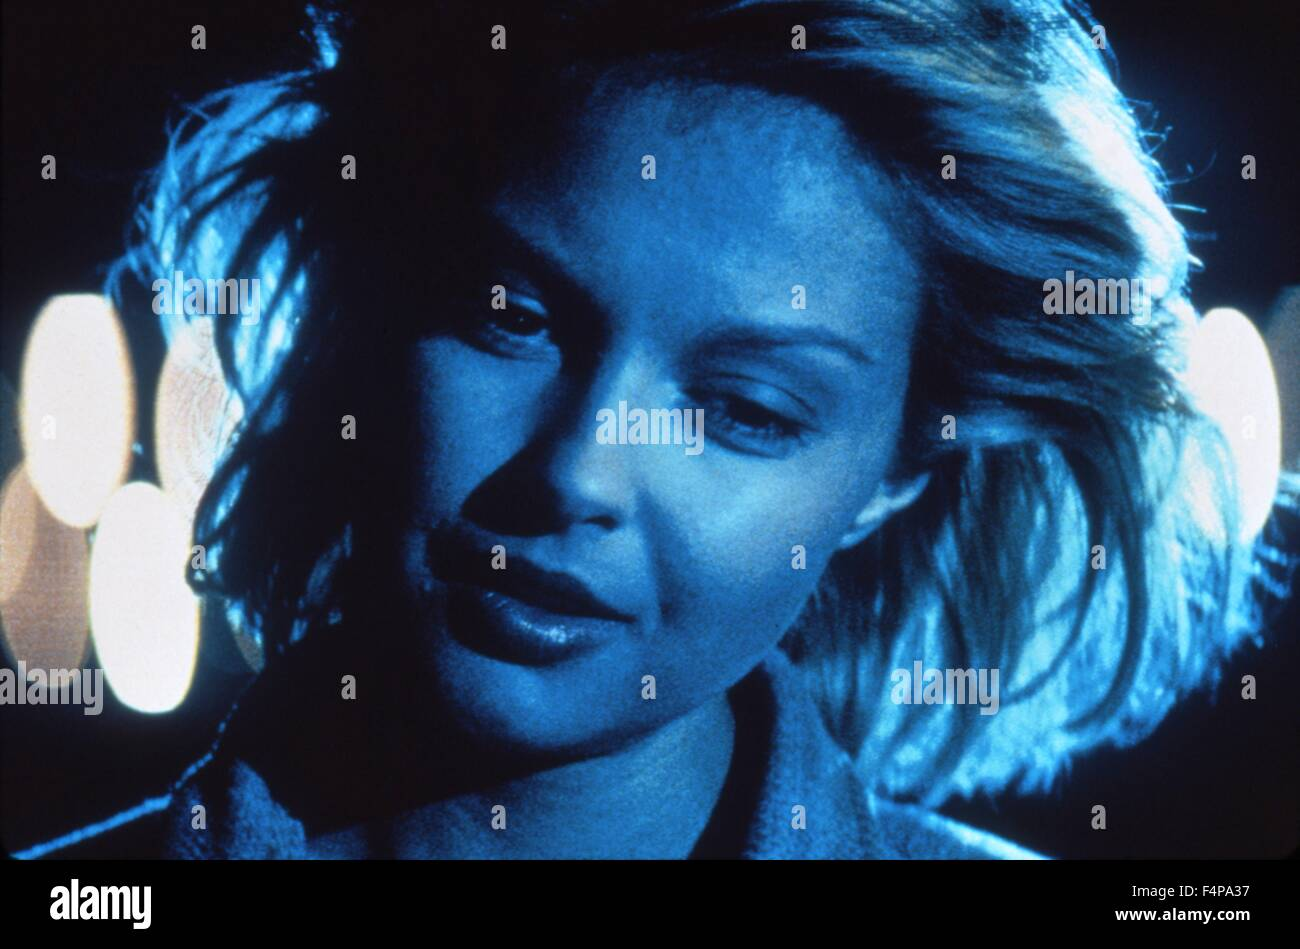 Ashley Judd / Heat 1995 directed by Michael Mann - Stock Image